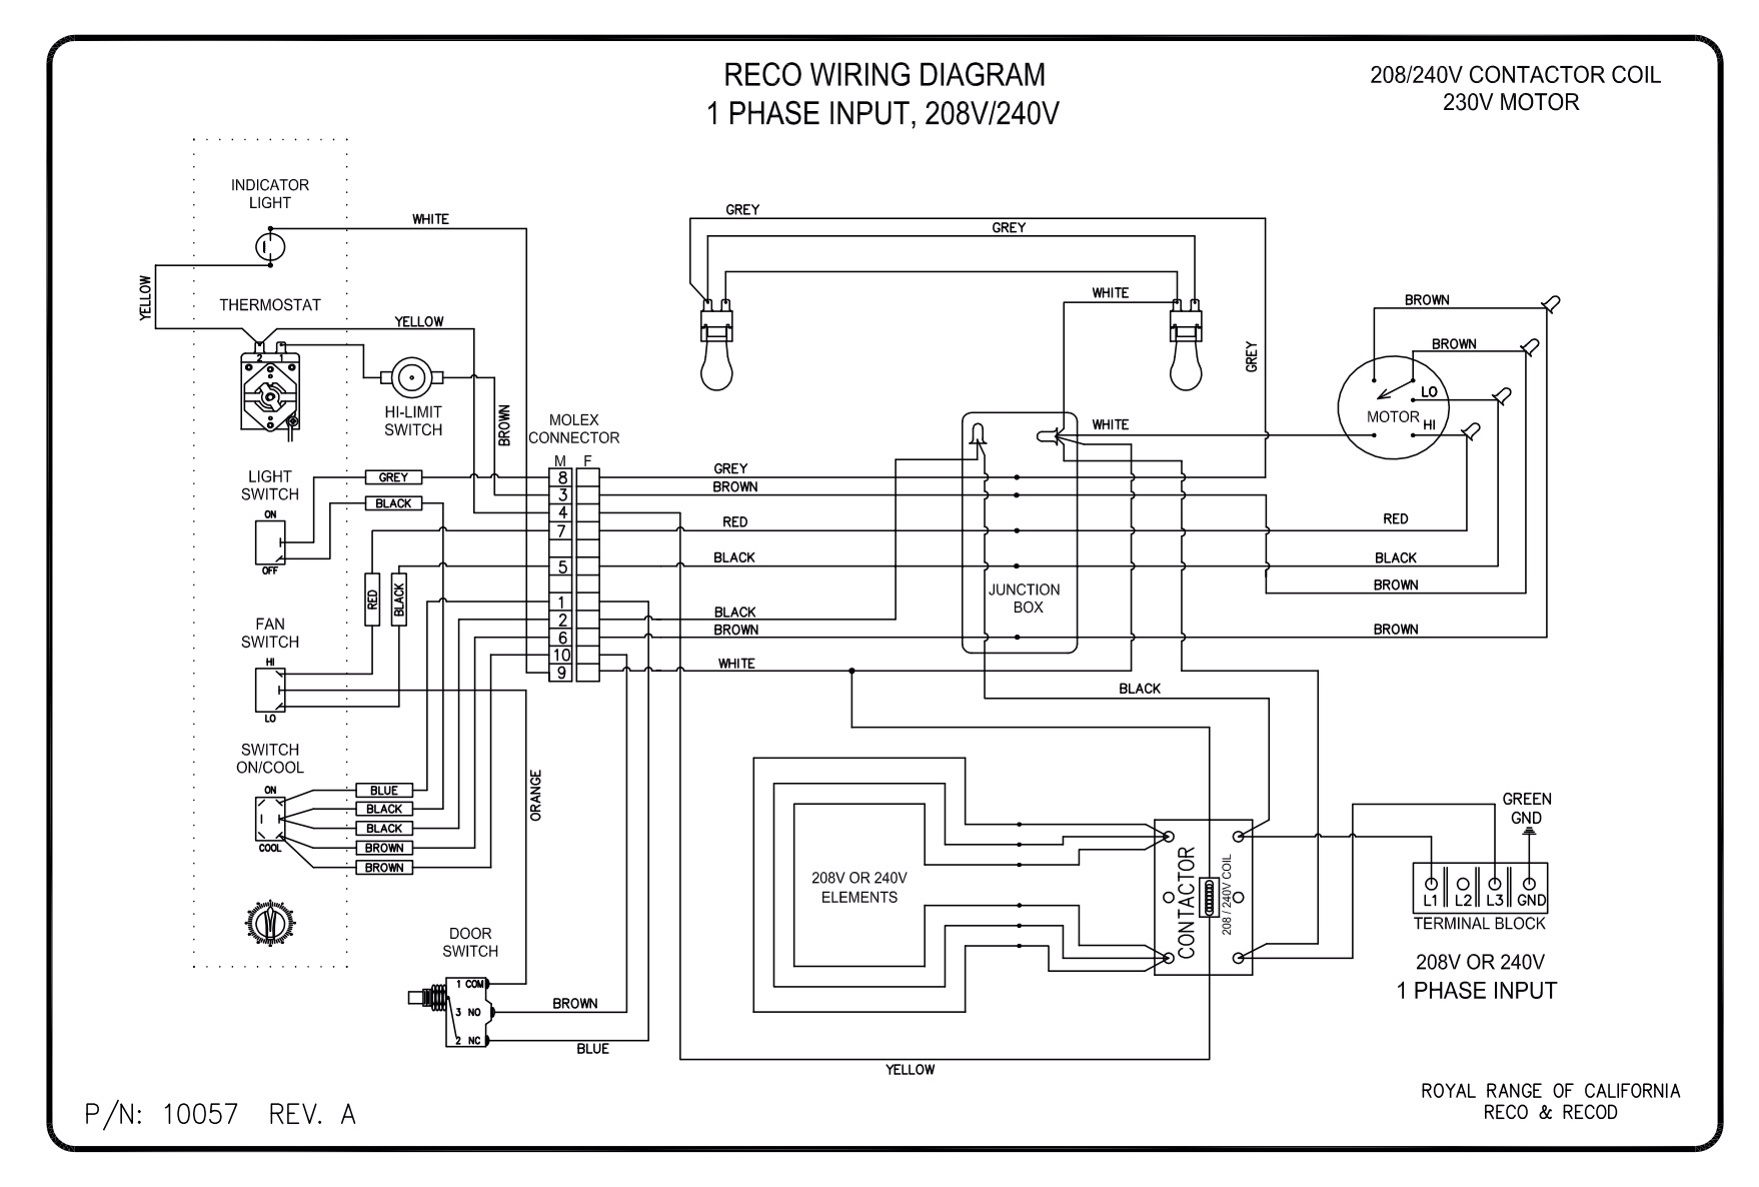 RECO1 wiring diagrams royal range of california electric oven wiring diagram at honlapkeszites.co